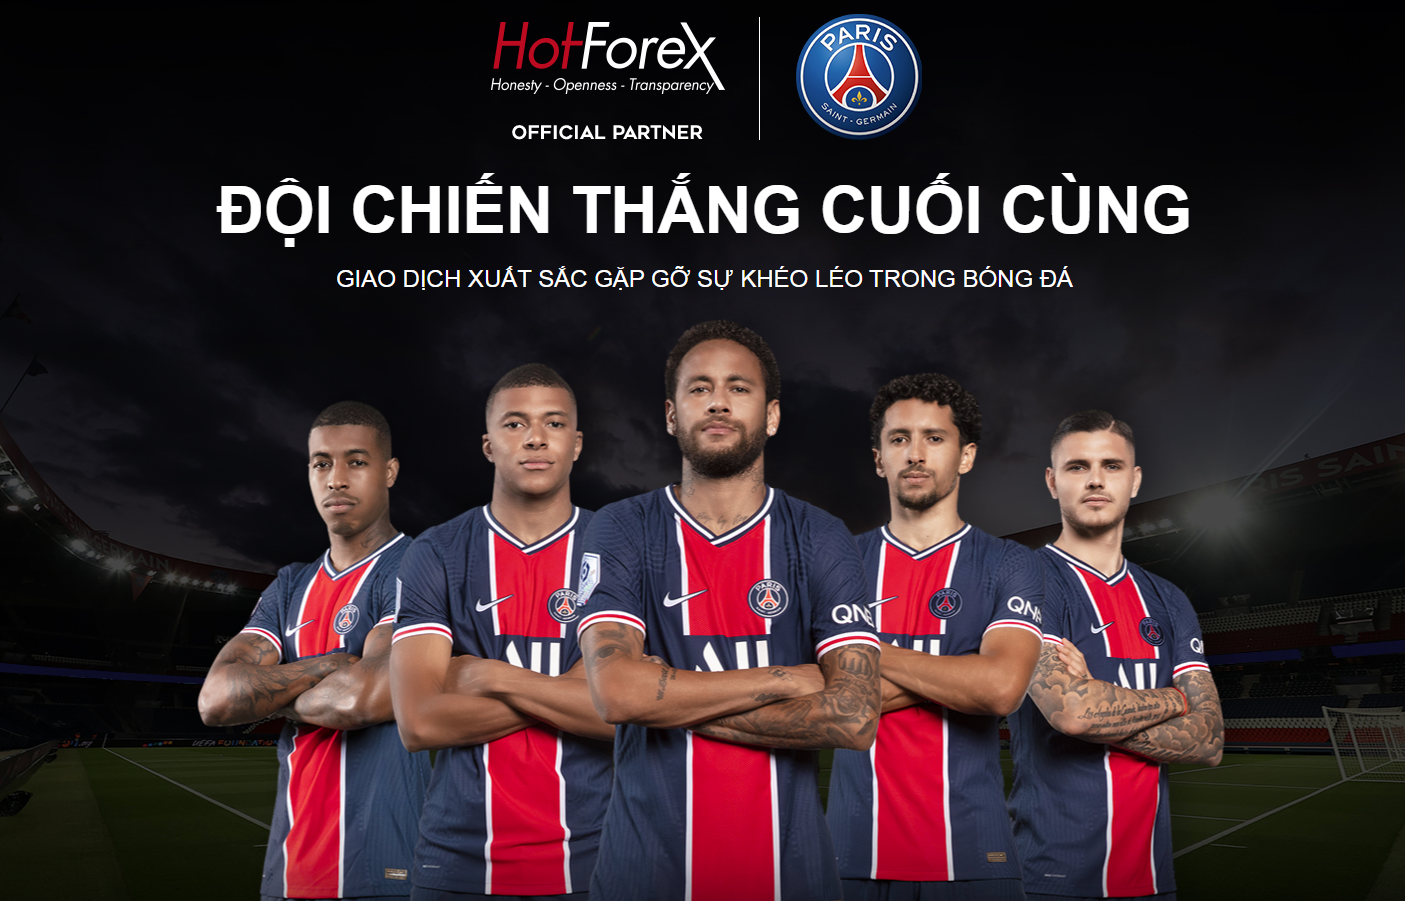 HotForex is an Official Partner of French giant Paris Saint-Germain F.C.!